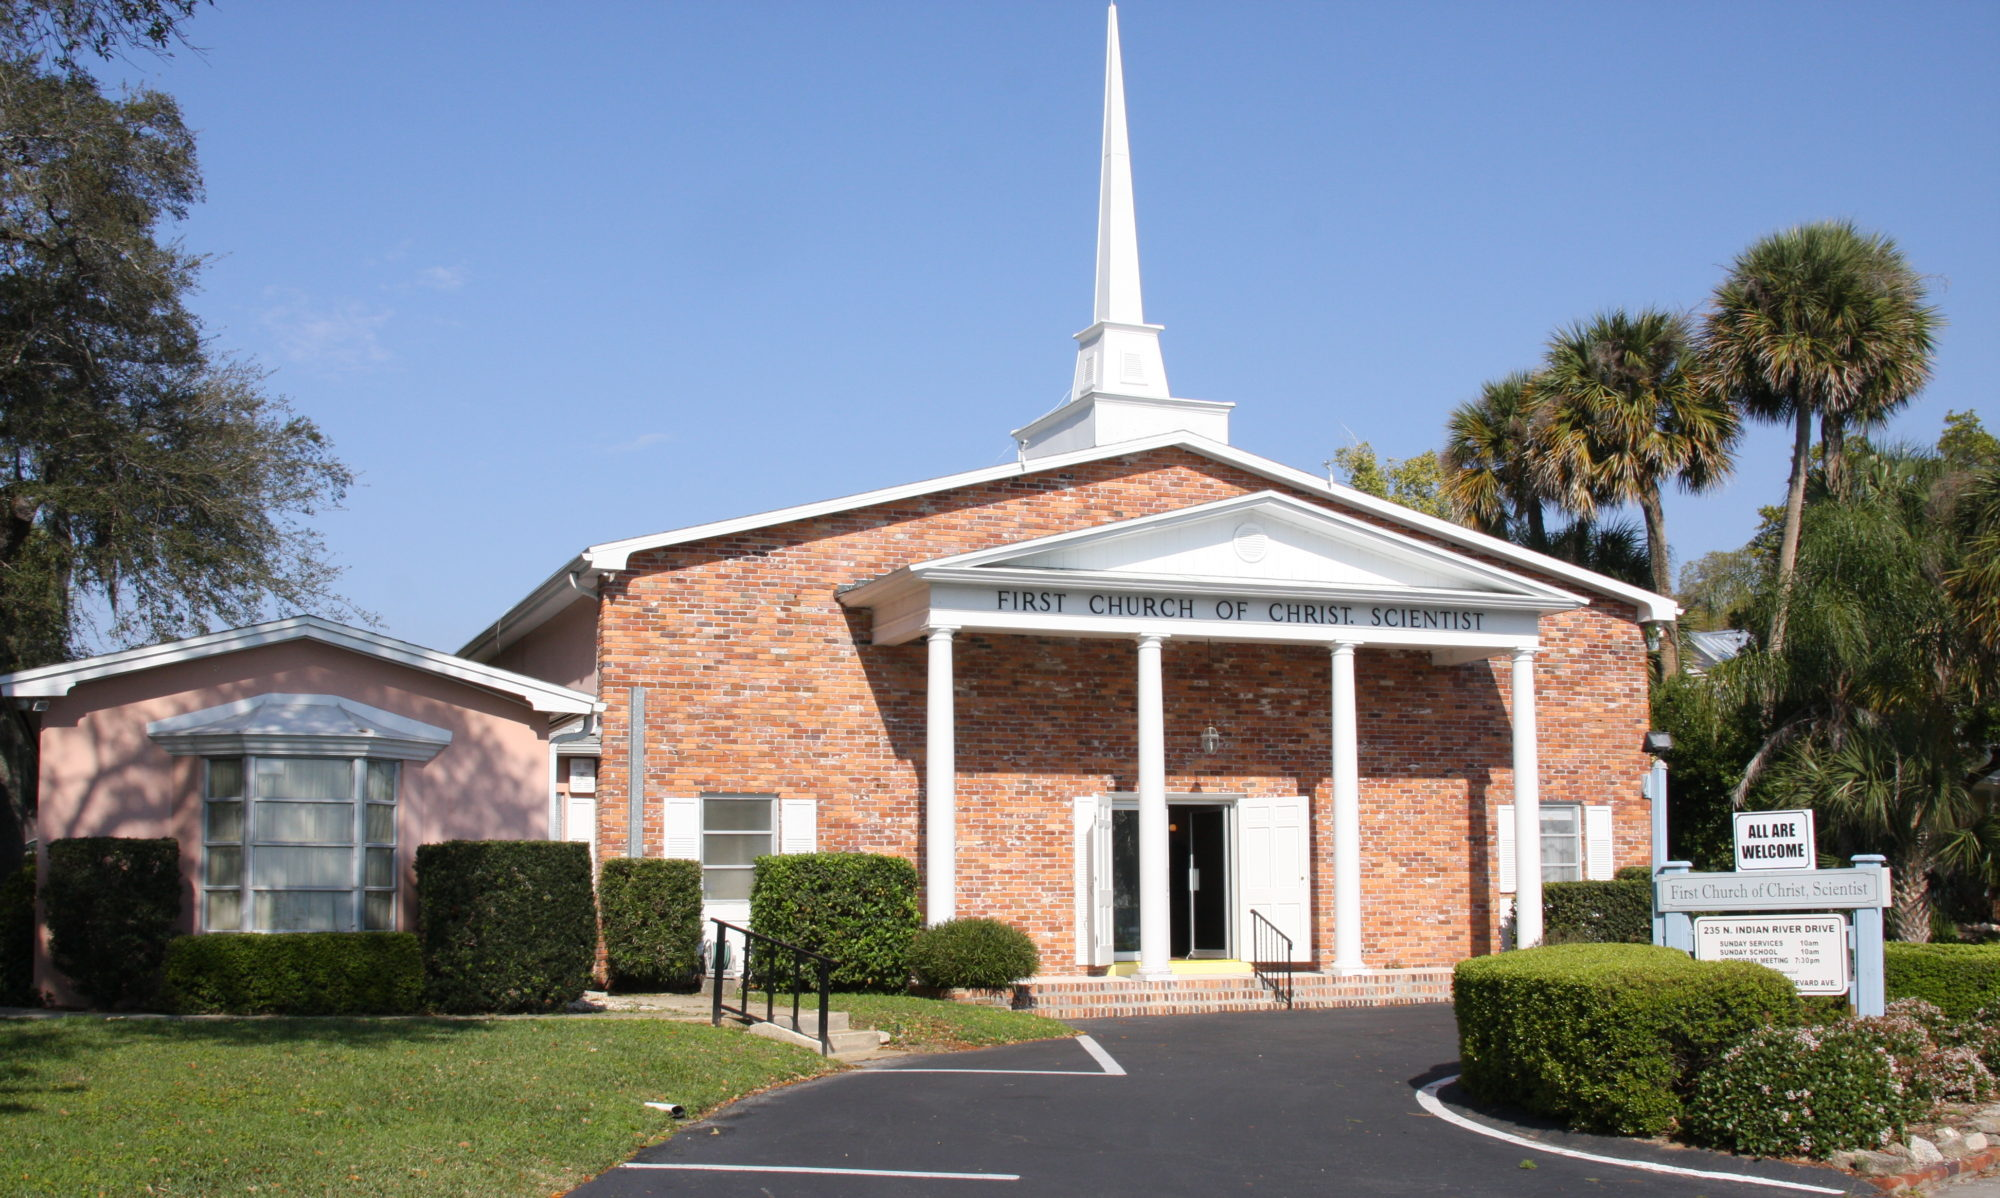 First Church of Christ Scientist, Cocoa, FL, USA